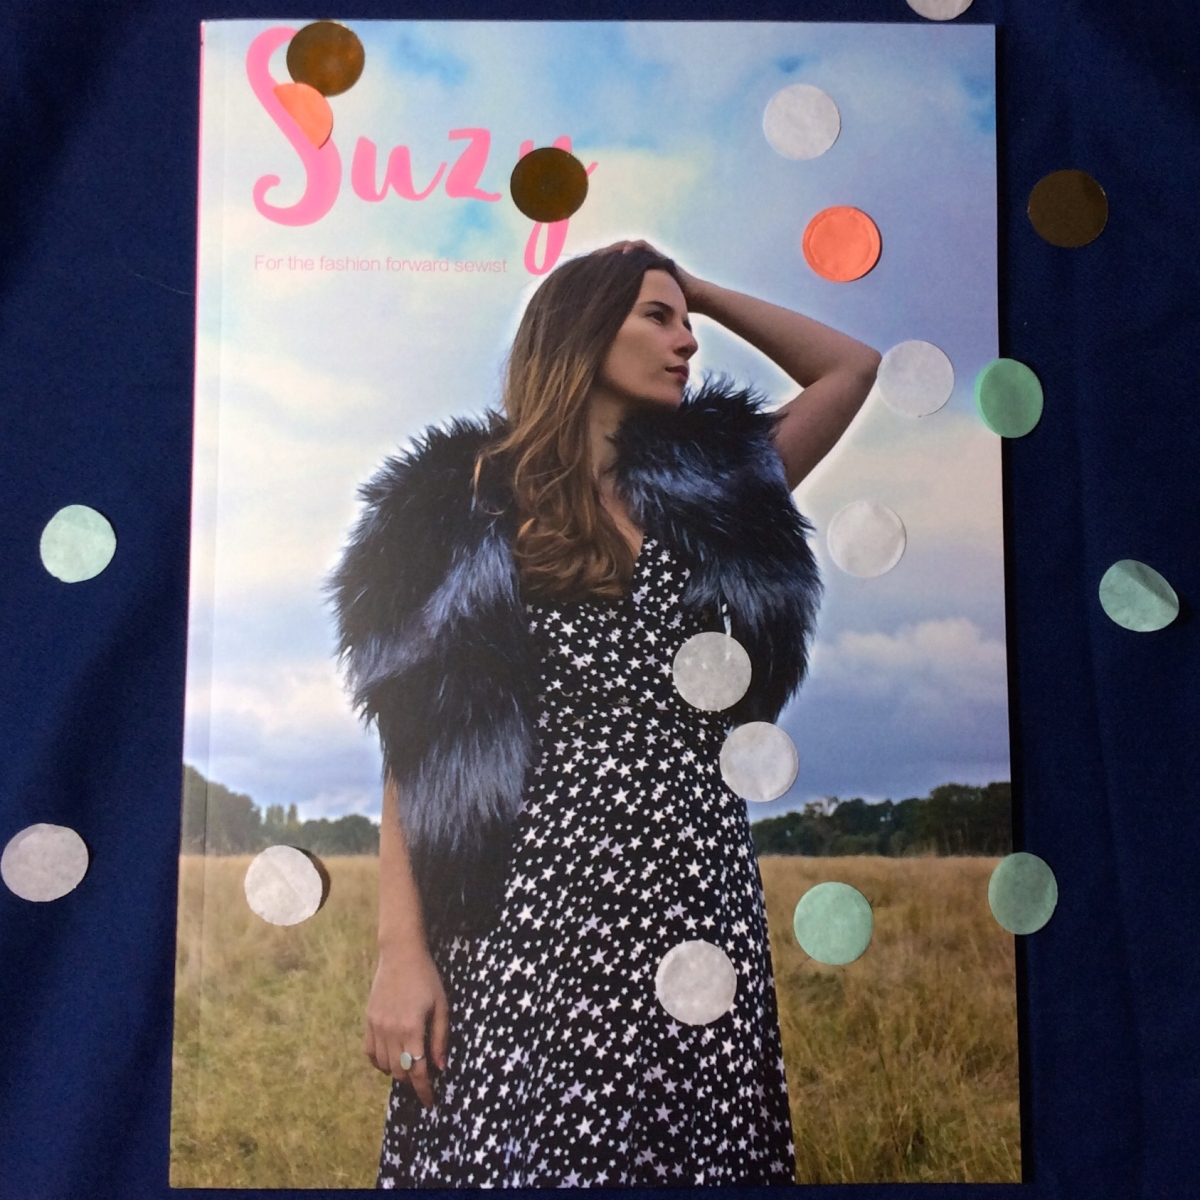 Suzy - A New Sewing Magazine pitched for the Fashion Forward  Sewist - a Review